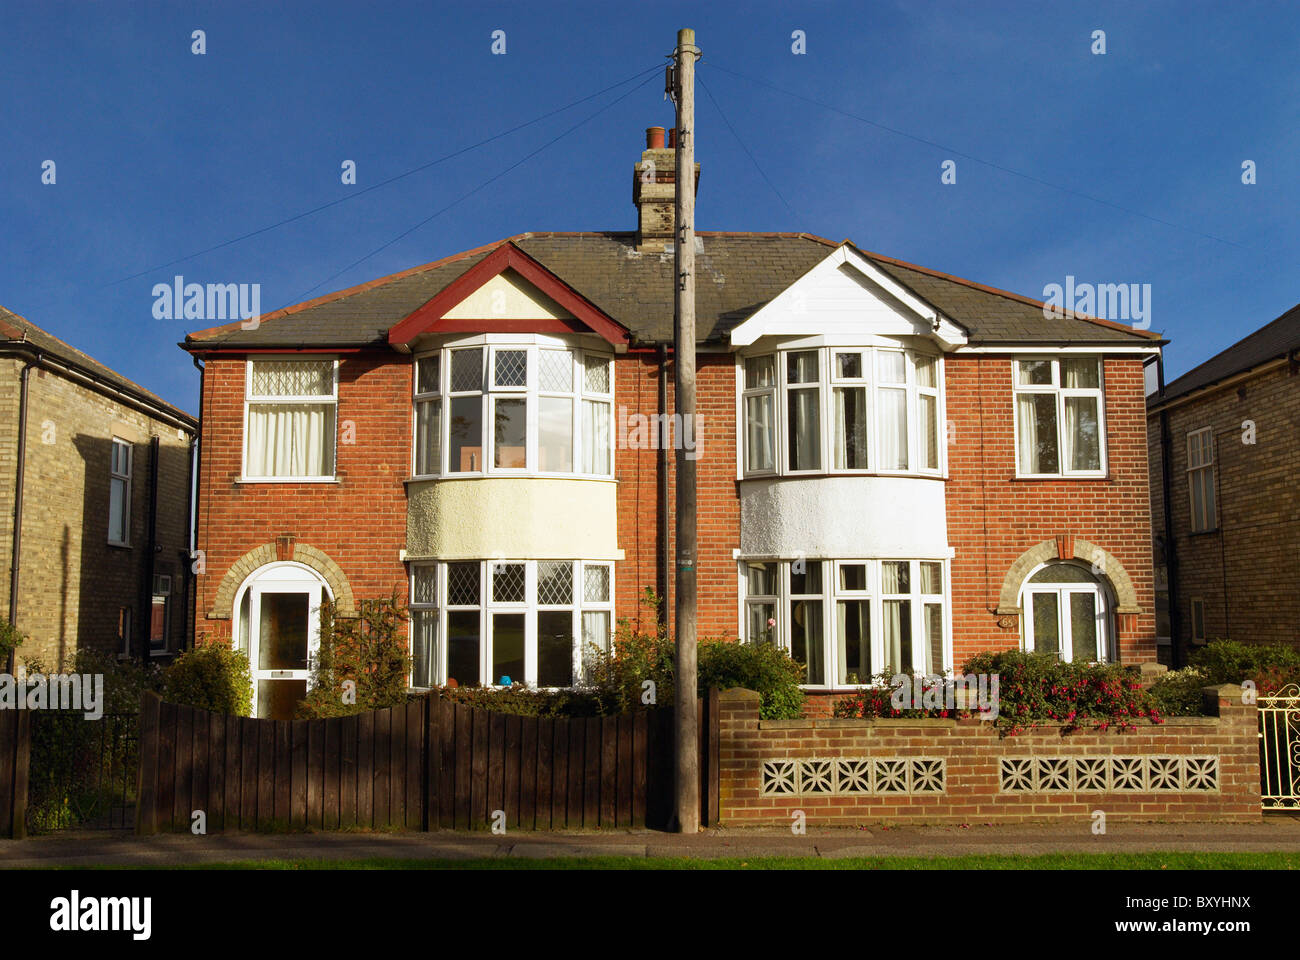 Semi detached houses england uk stock image